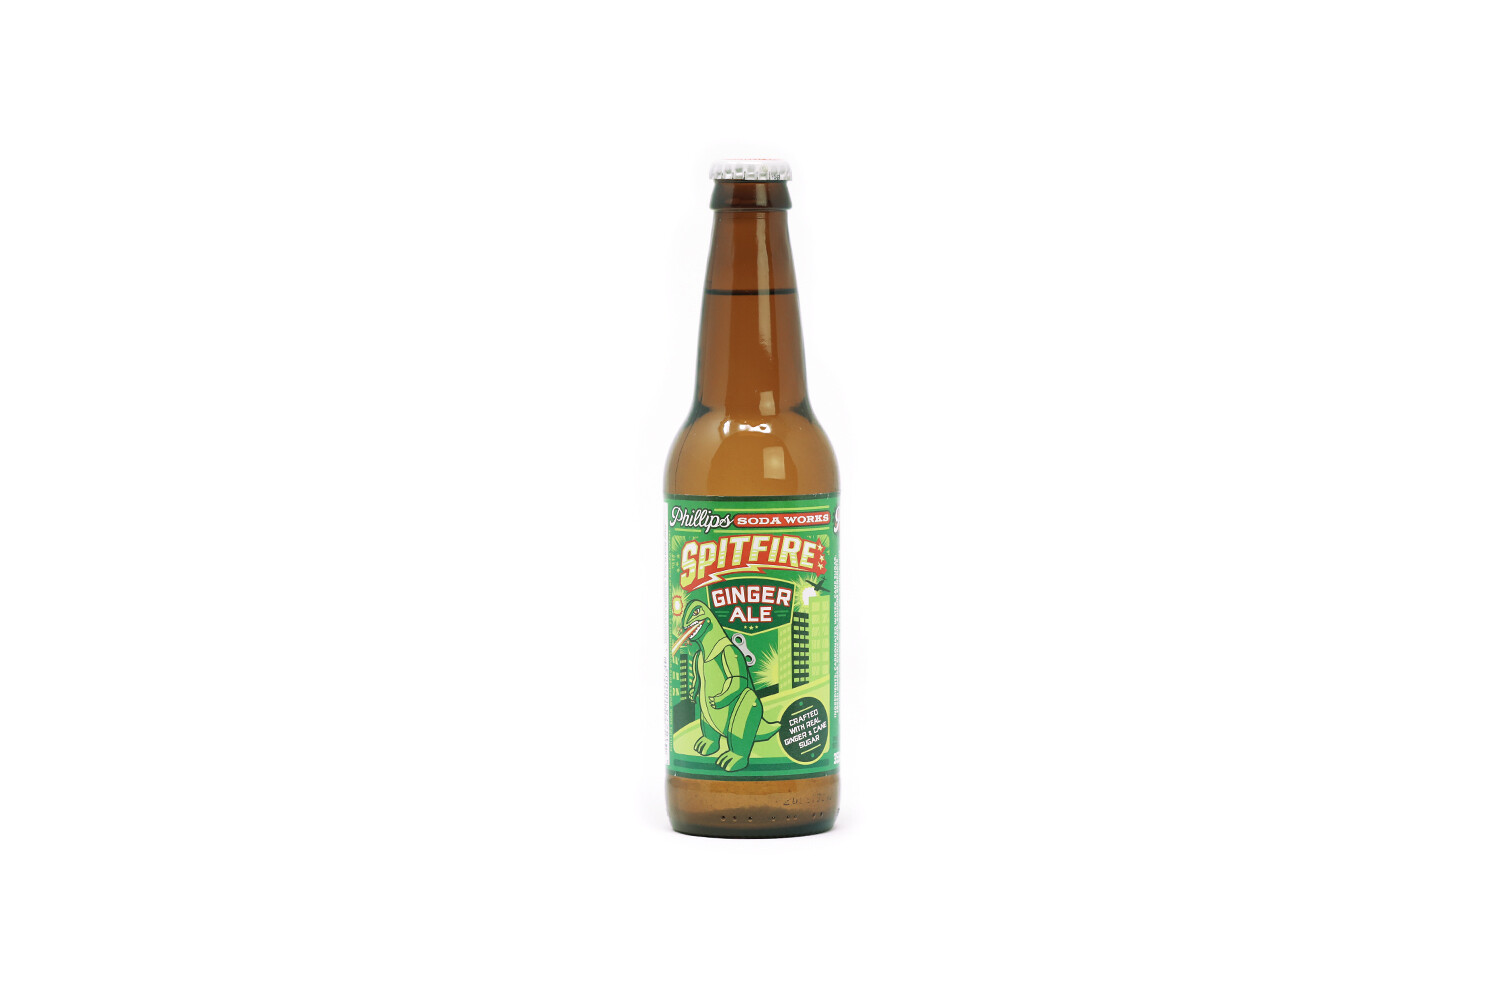 Phillips Ginger Ale